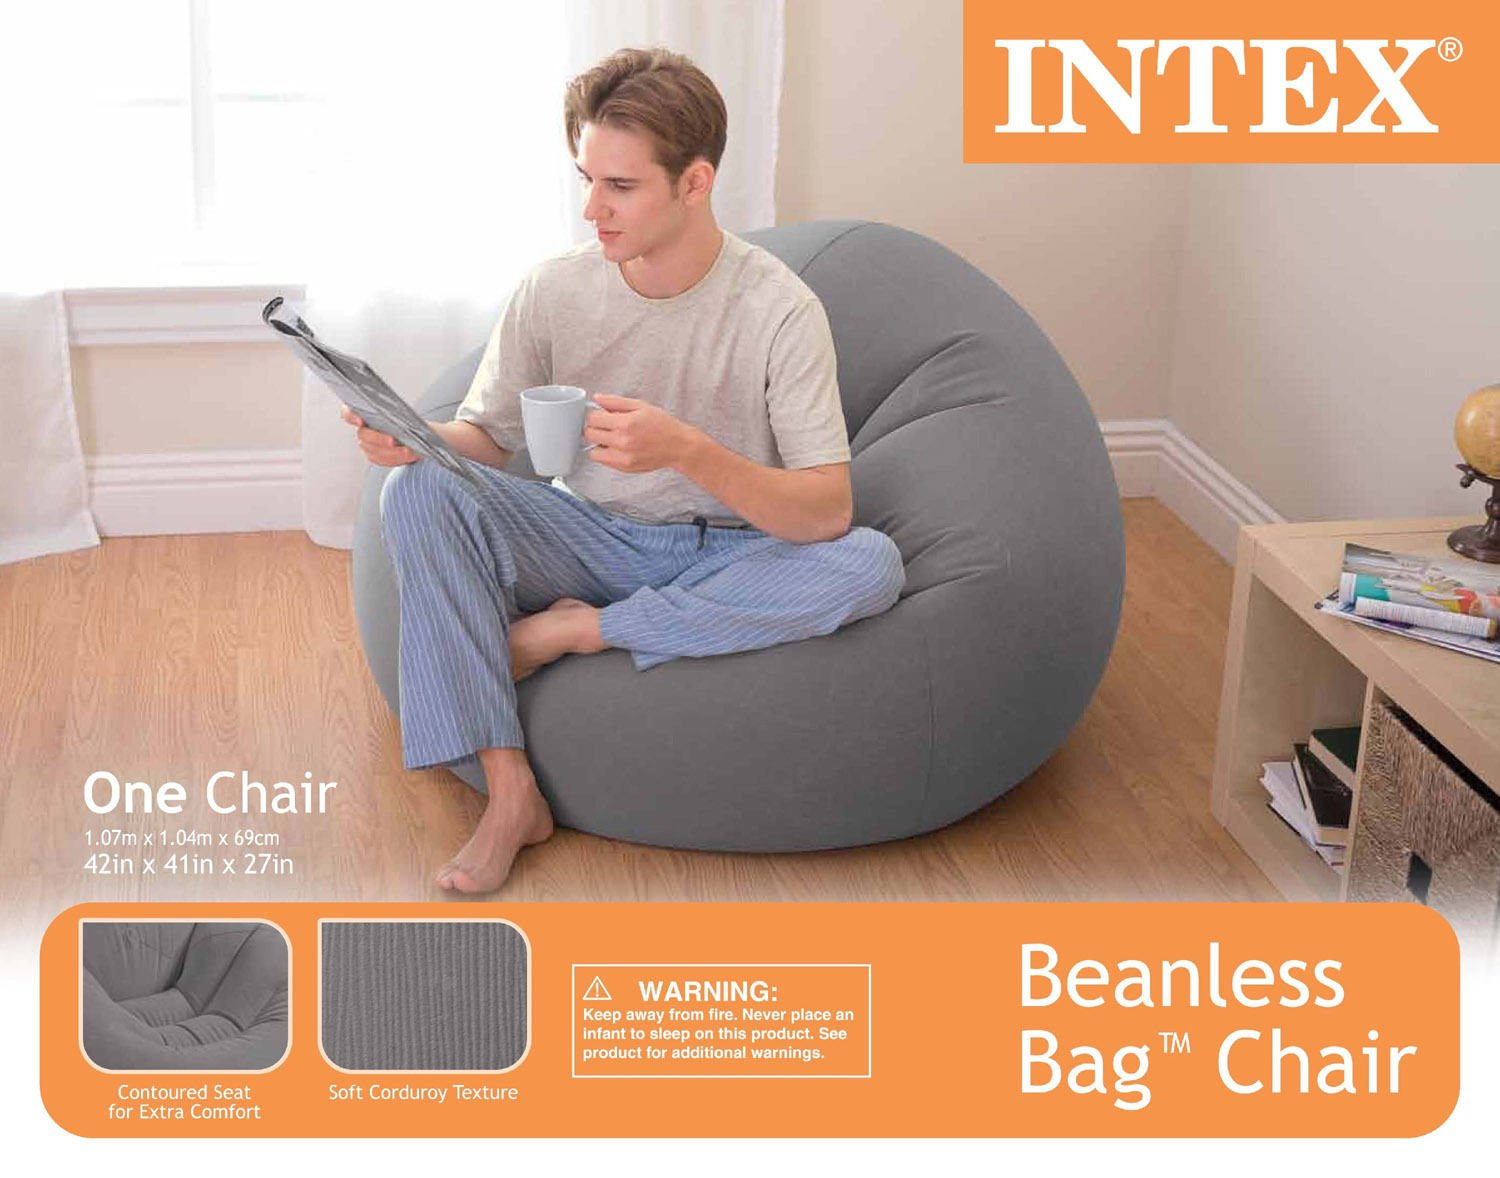 intex inflatable lounge chair. Amazon.com: Intex Inflatable Contoured Corduroy Beanless Bag Lounge Chair, Grey | 68579EP: Kitchen \u0026 Dining Chair